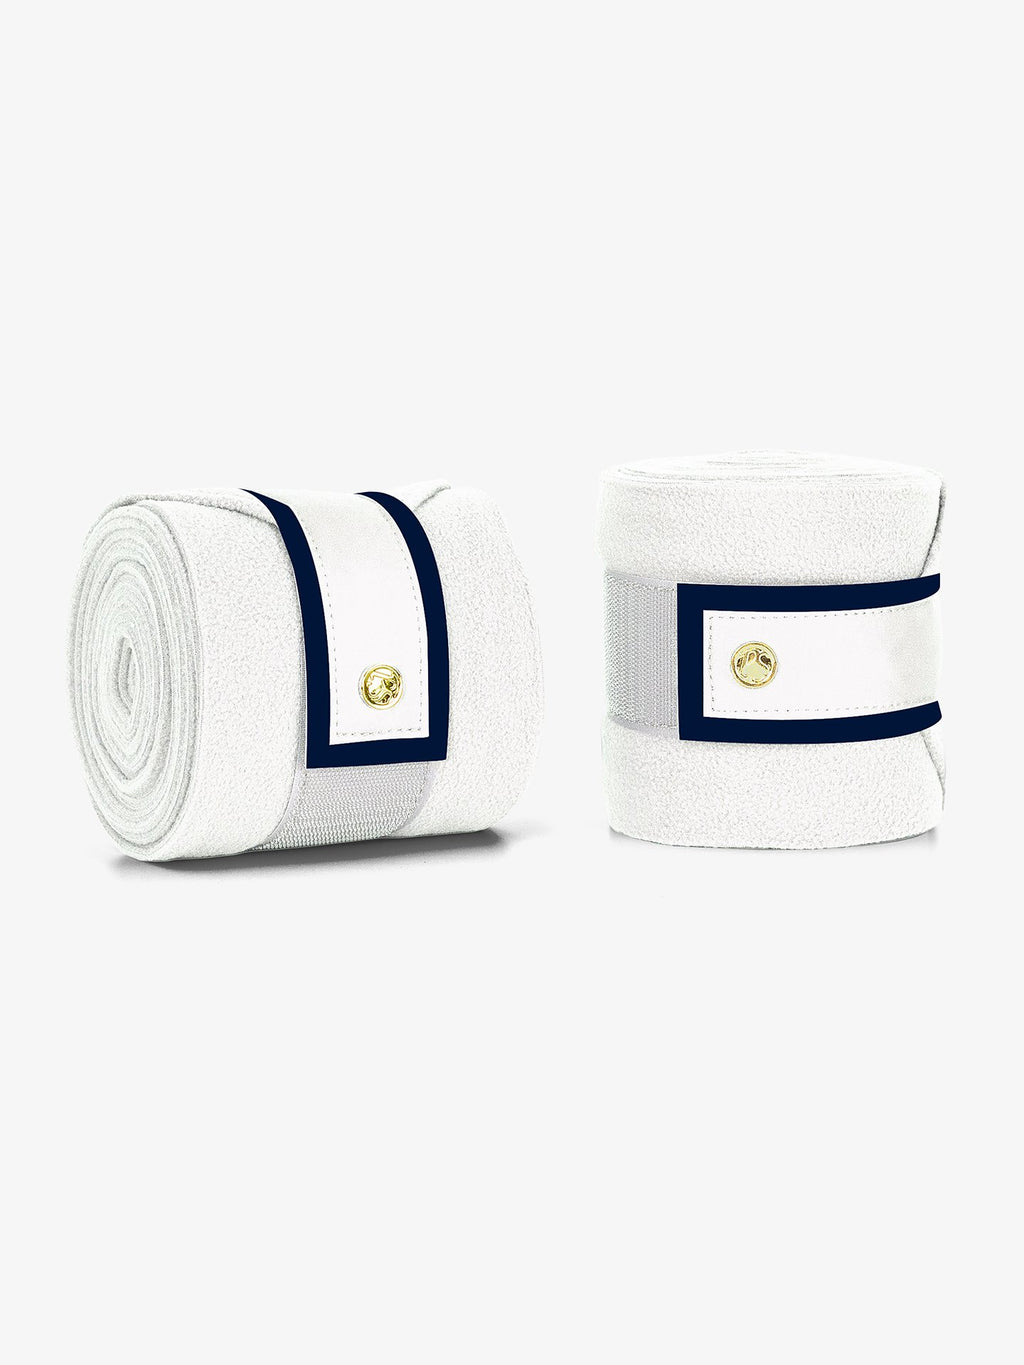 PS of Sweden Polo Wraps - Lap of Honor - The Dressage Store